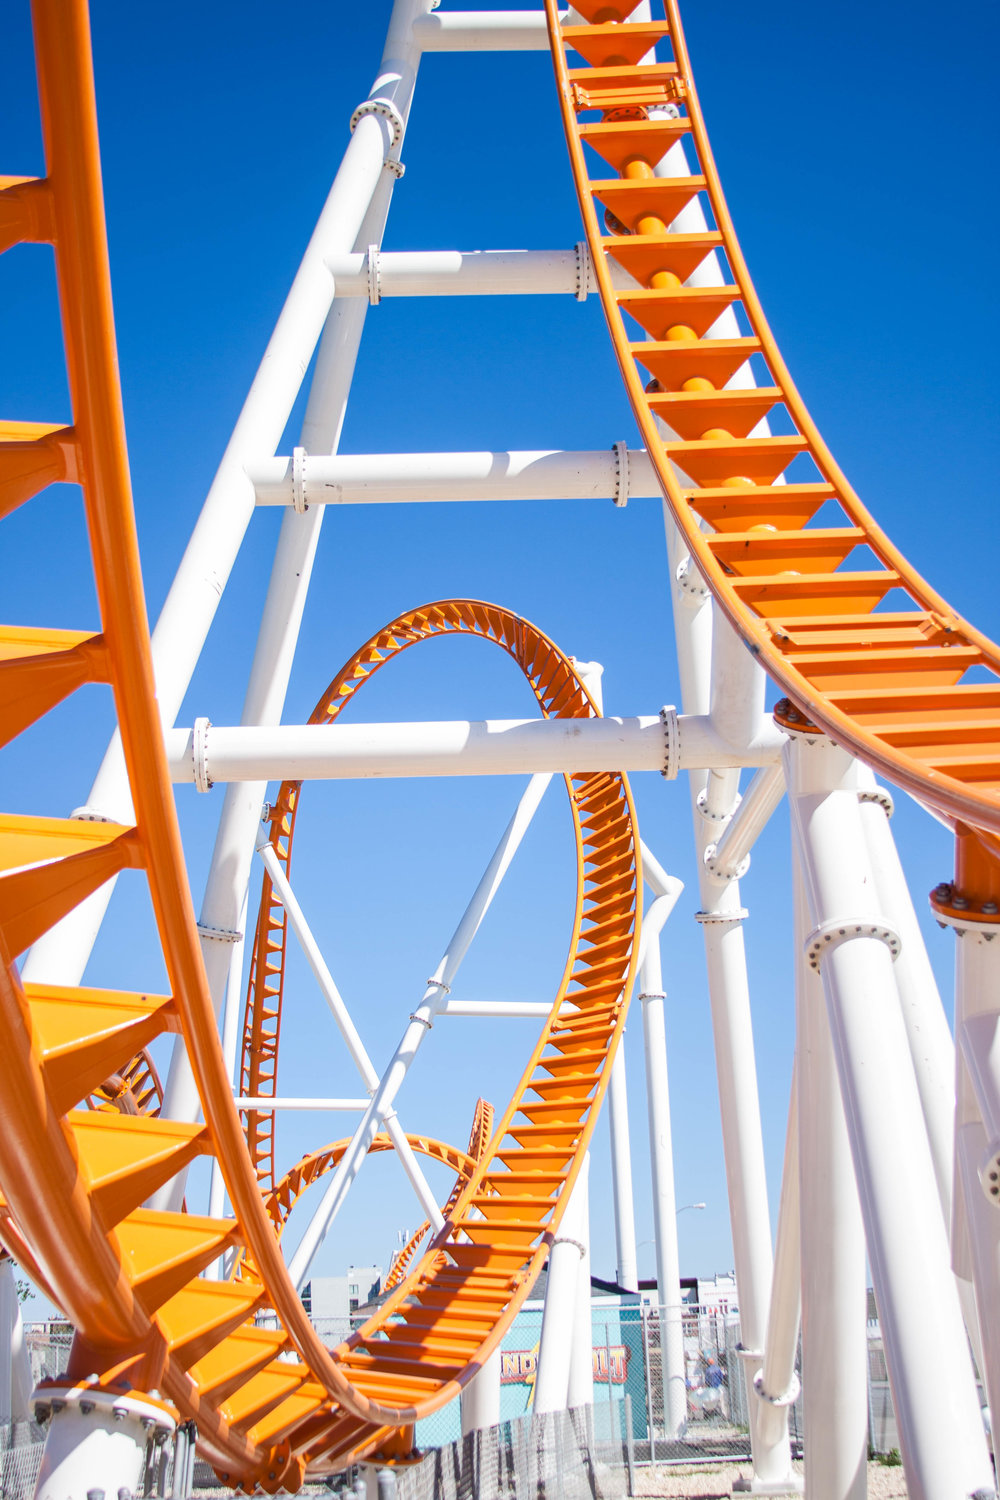 Orange tracks attached to the white support structure that makes up the Thunderbolt Roller Coaster in Brooklyn's Coney Island. MEP designed by 2LS Consulting Engineering.